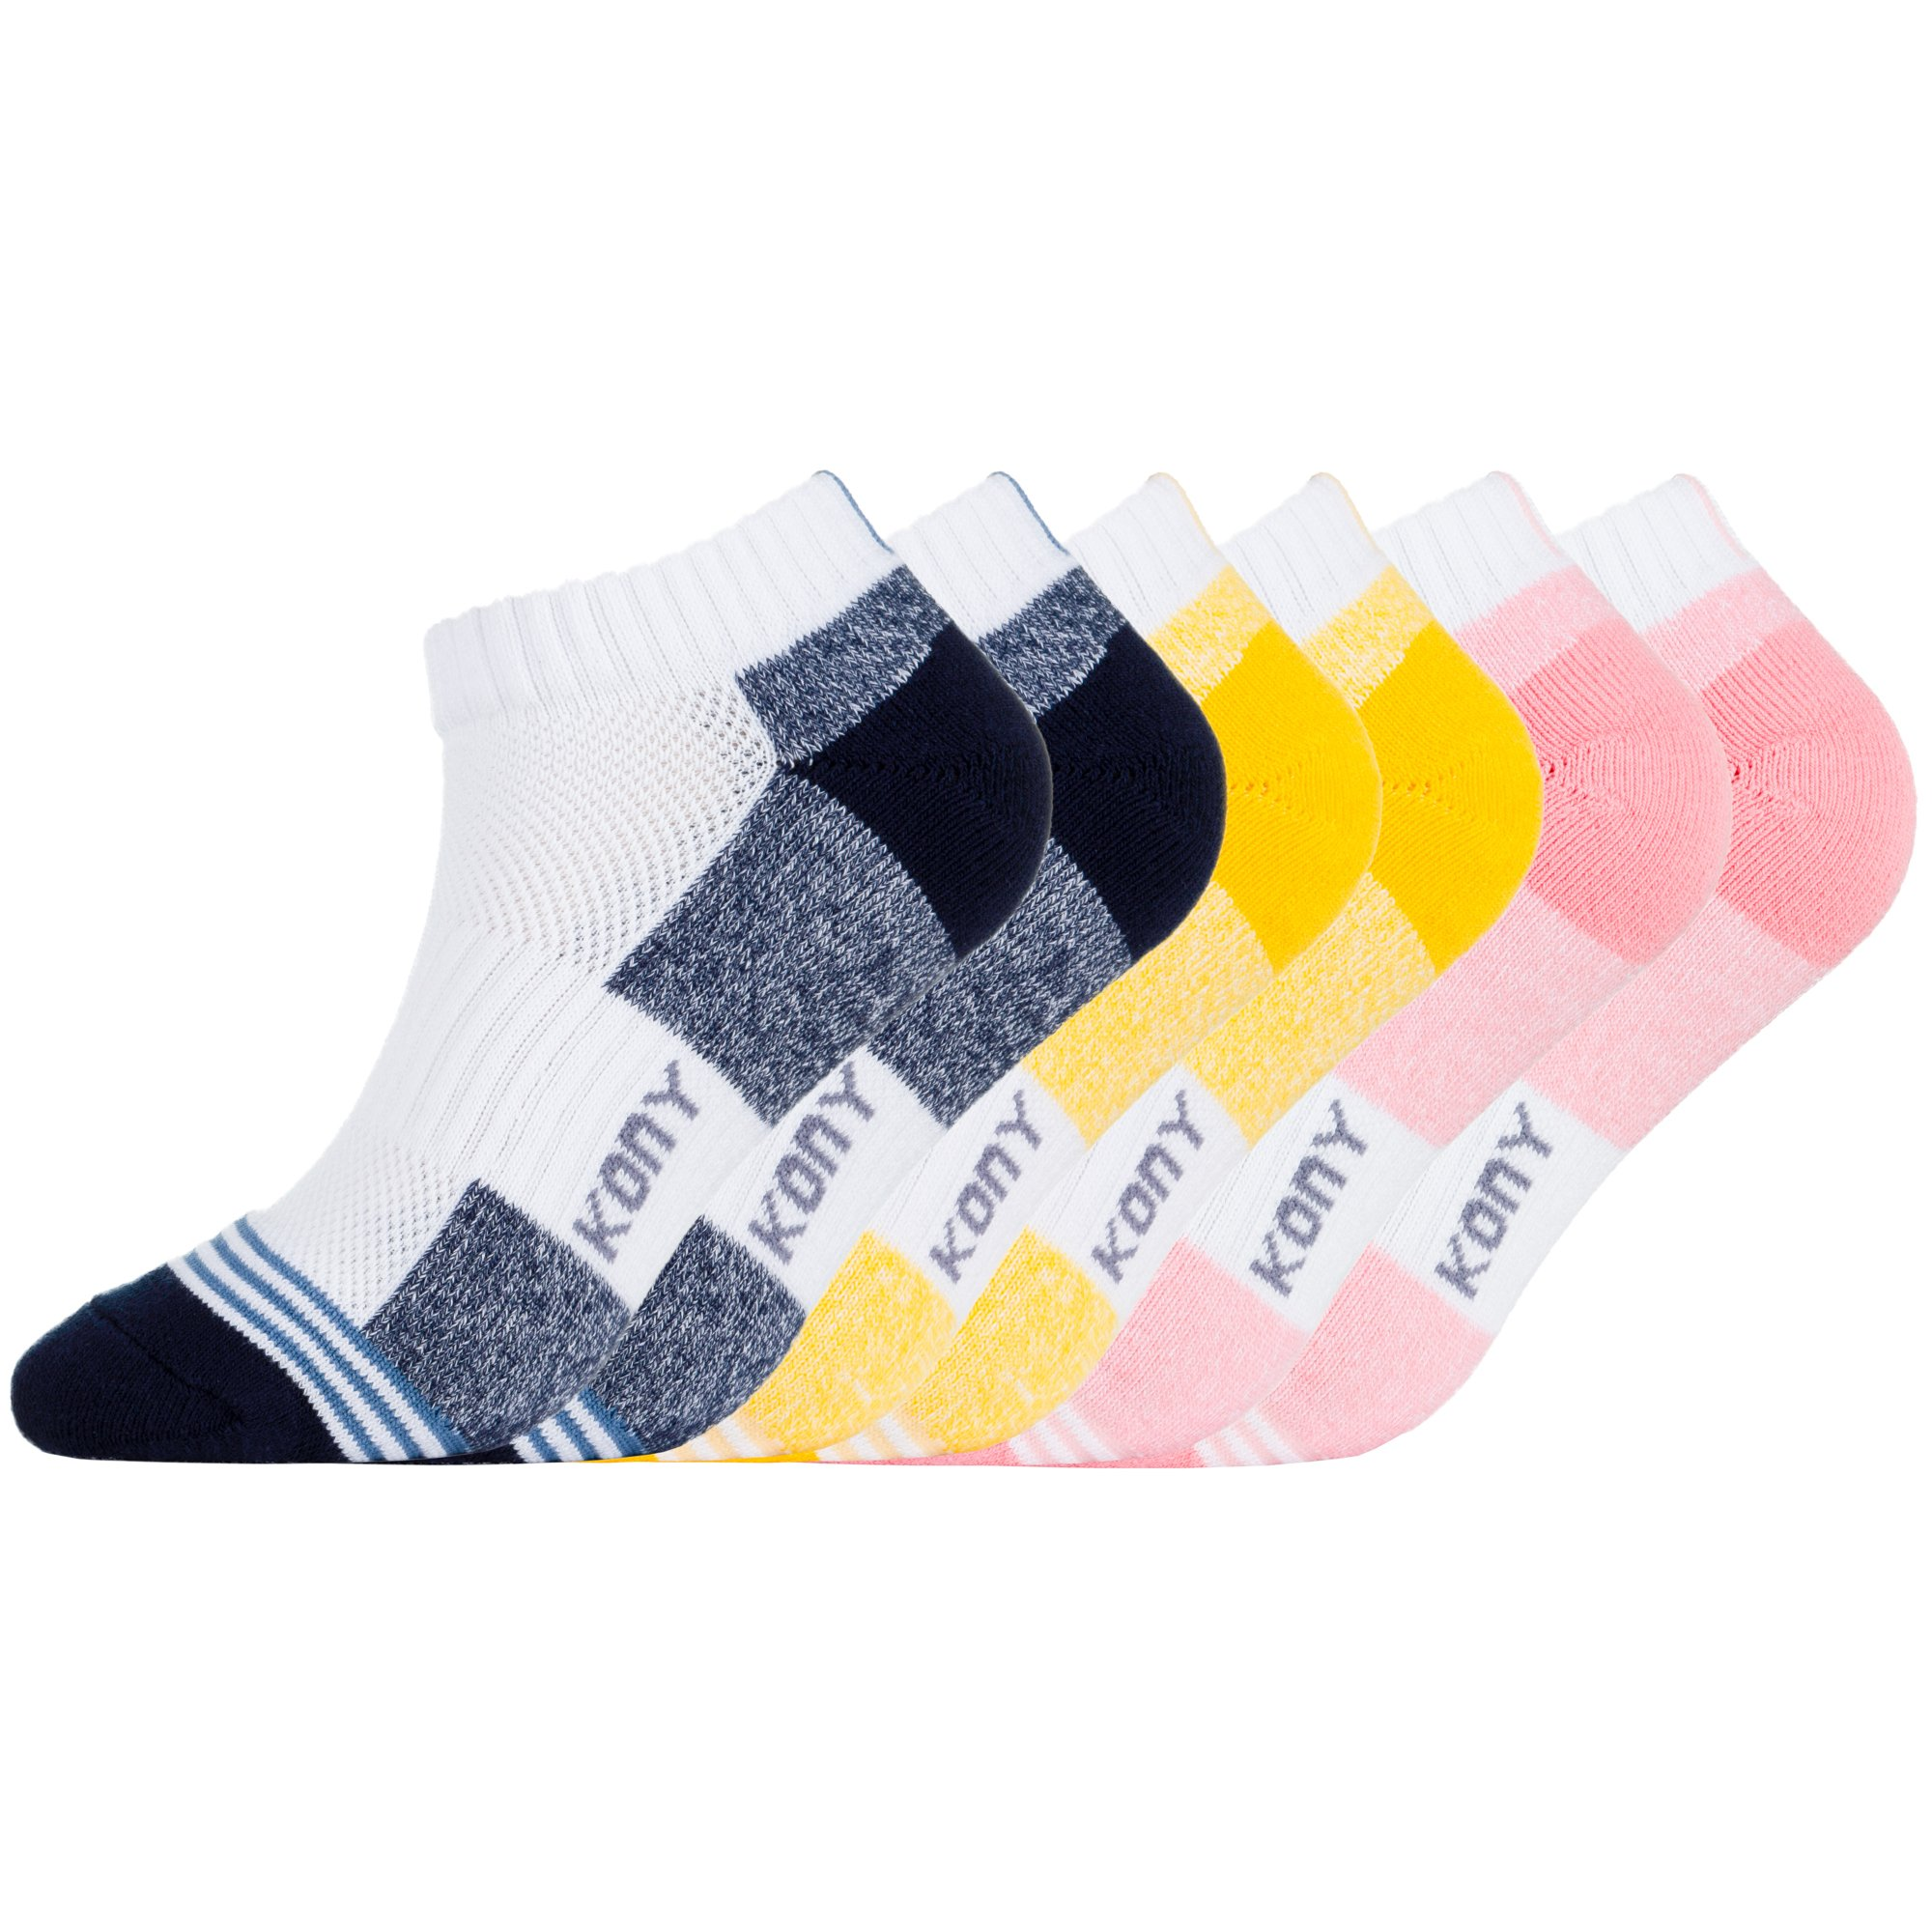 KONY Women's 6 Pack Thick Cotton Cushioned Outdoor Athletic Low Ankle Socks Air-cross Mesh Gym Running Socks (Multicolor-2)